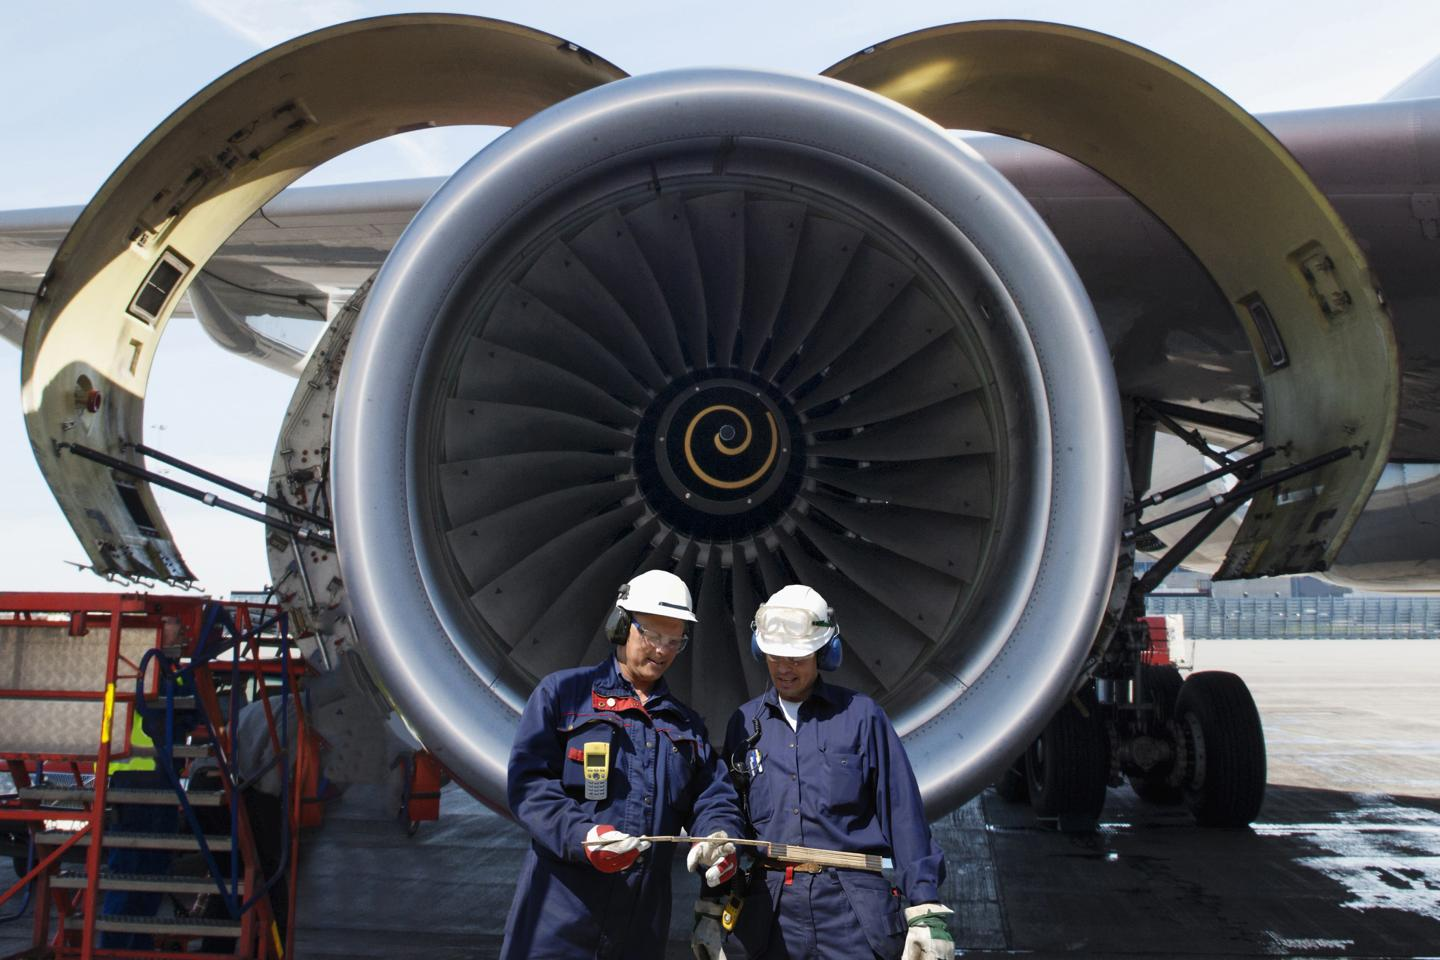 Photo of two men infront of airplane engine